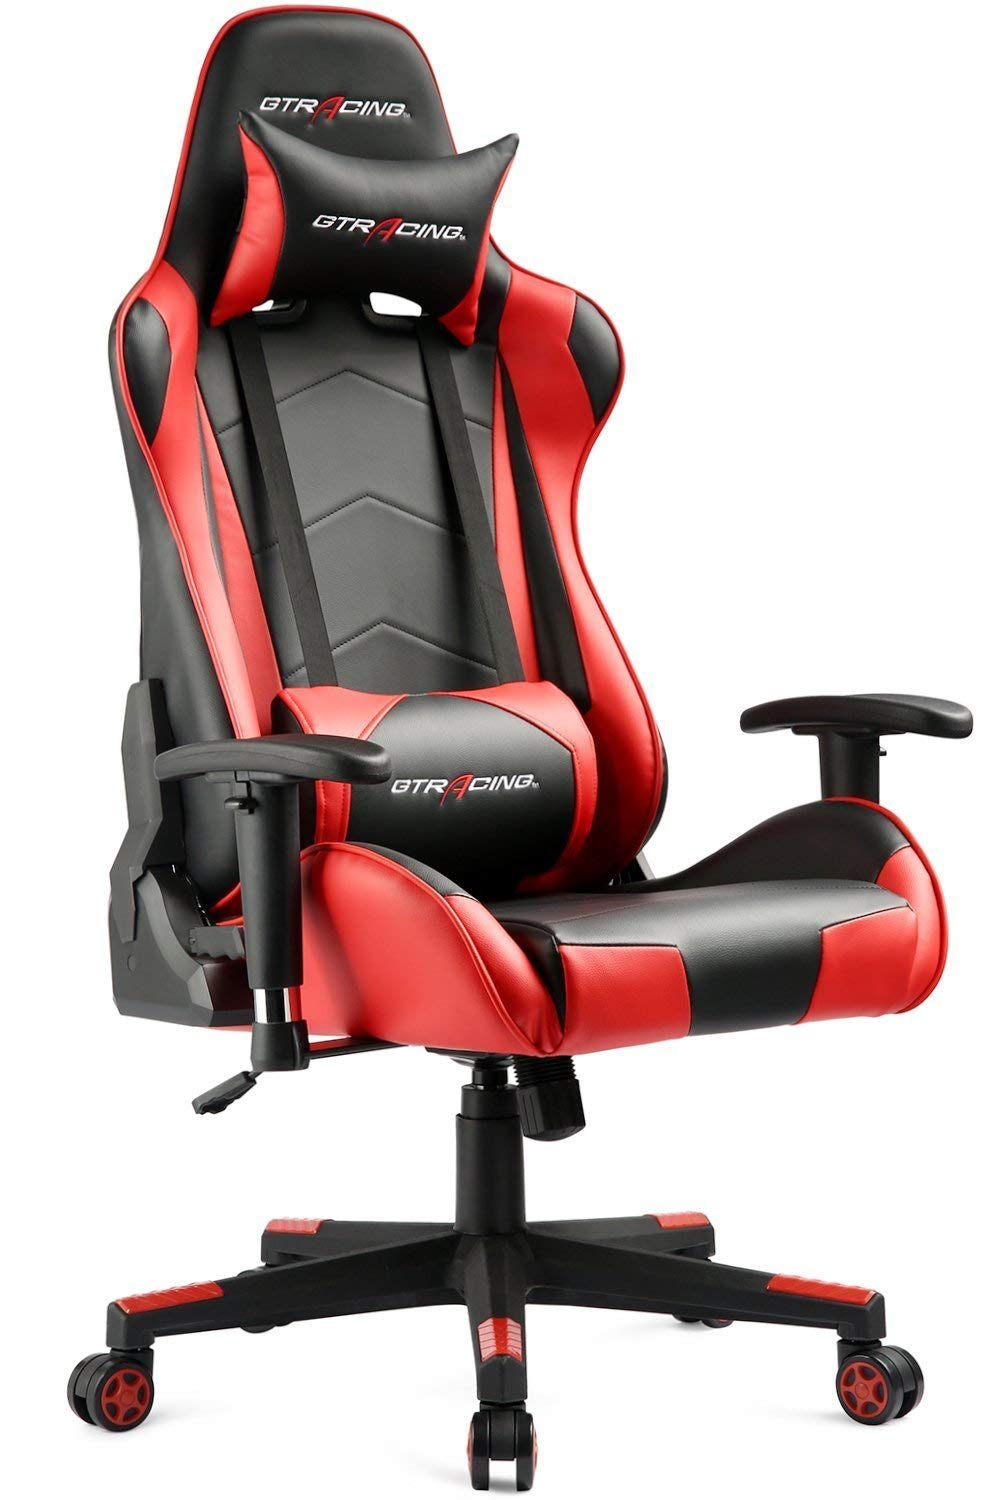 GTRACING Gaming Office Computer Chair with Ergonomic Backrest